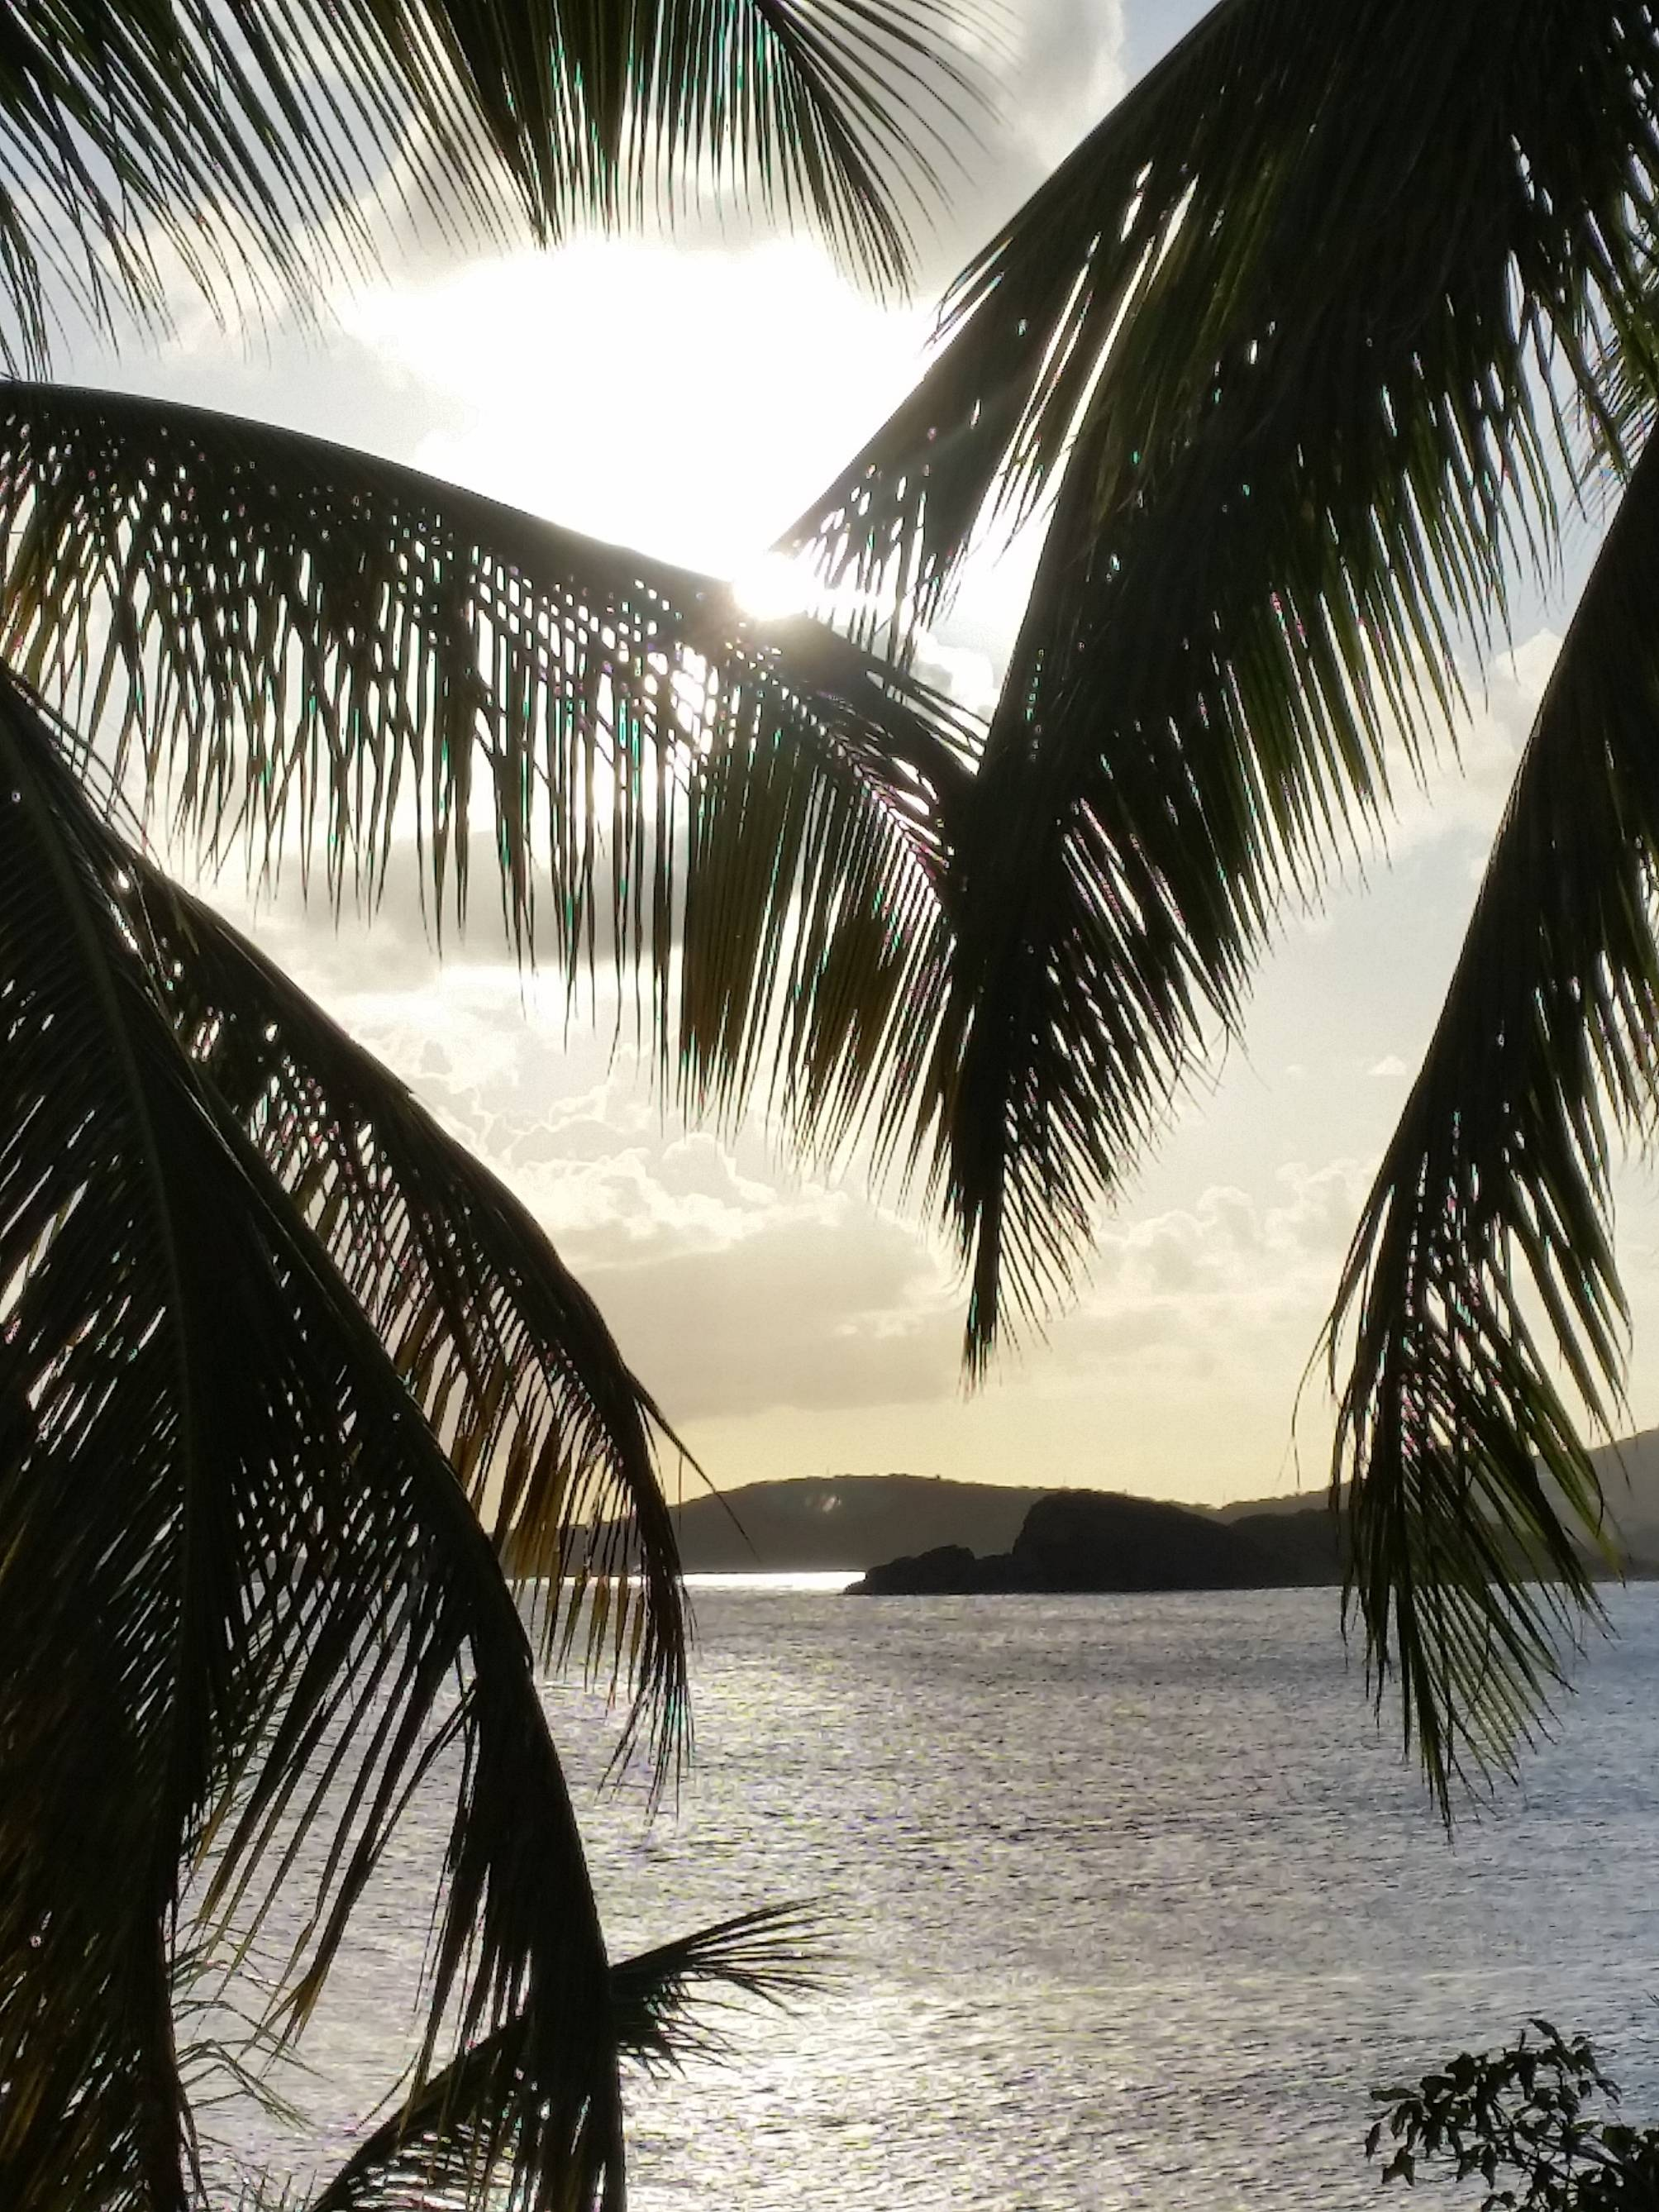 This photo was taken last February in St. Thomas, US Virgin Islands. The views from the resort pools were incredible. This is the view from the pool late in the afternoon.